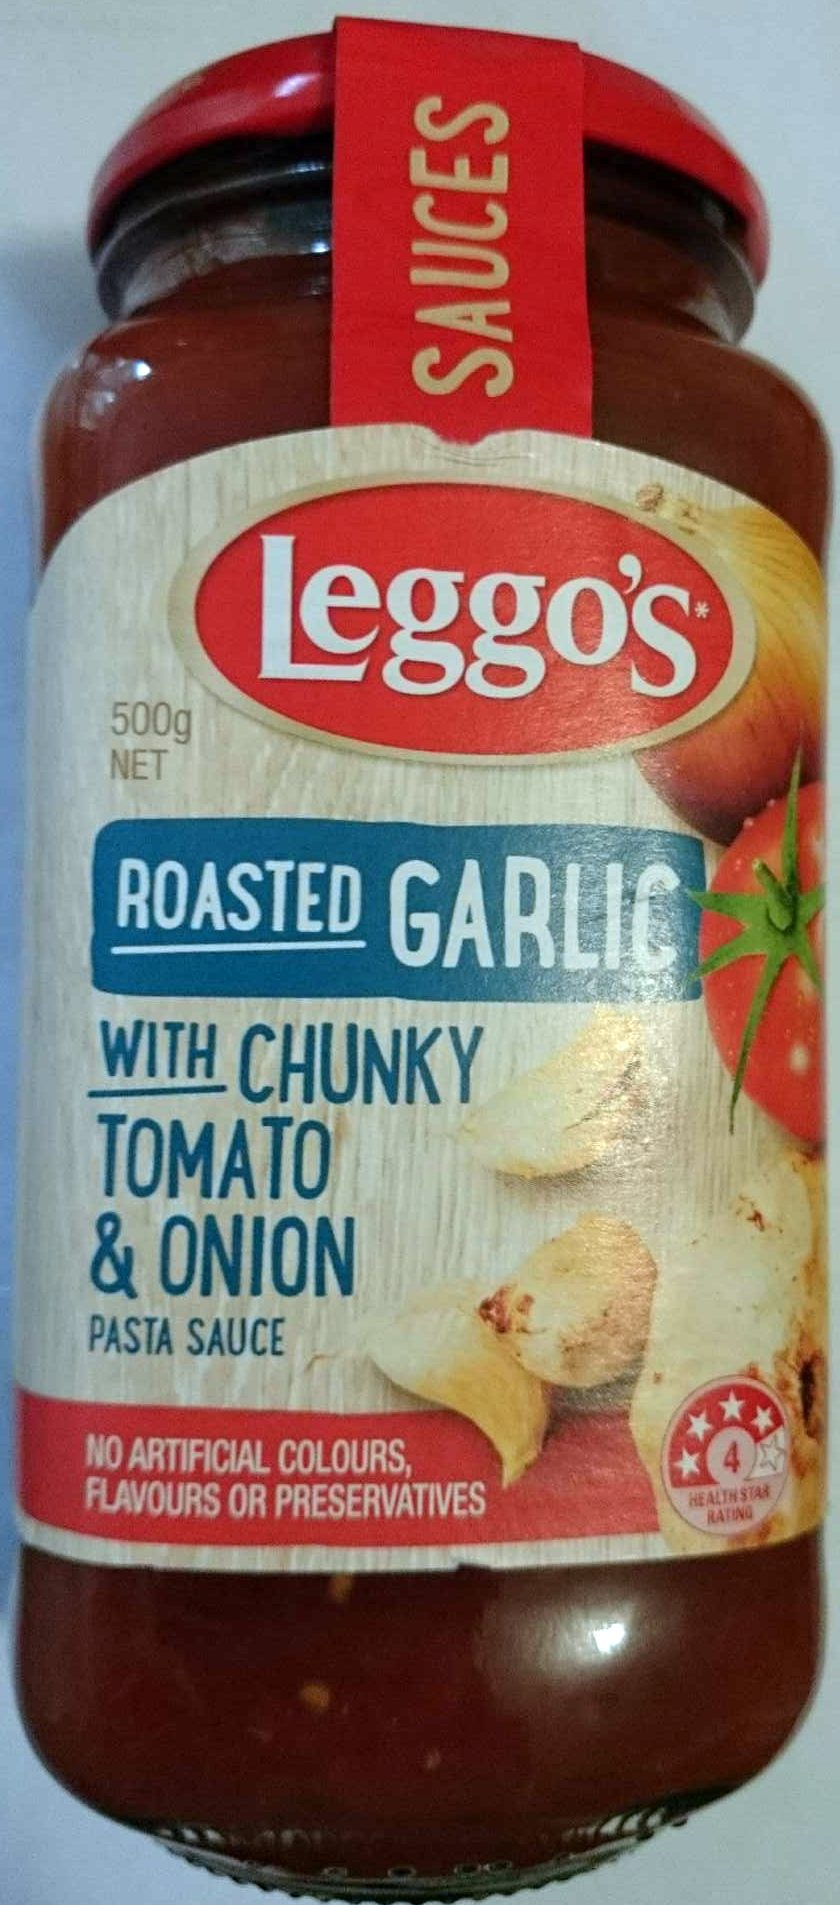 Roasted Garlic with Chunky Tomato & Onion - Product - en